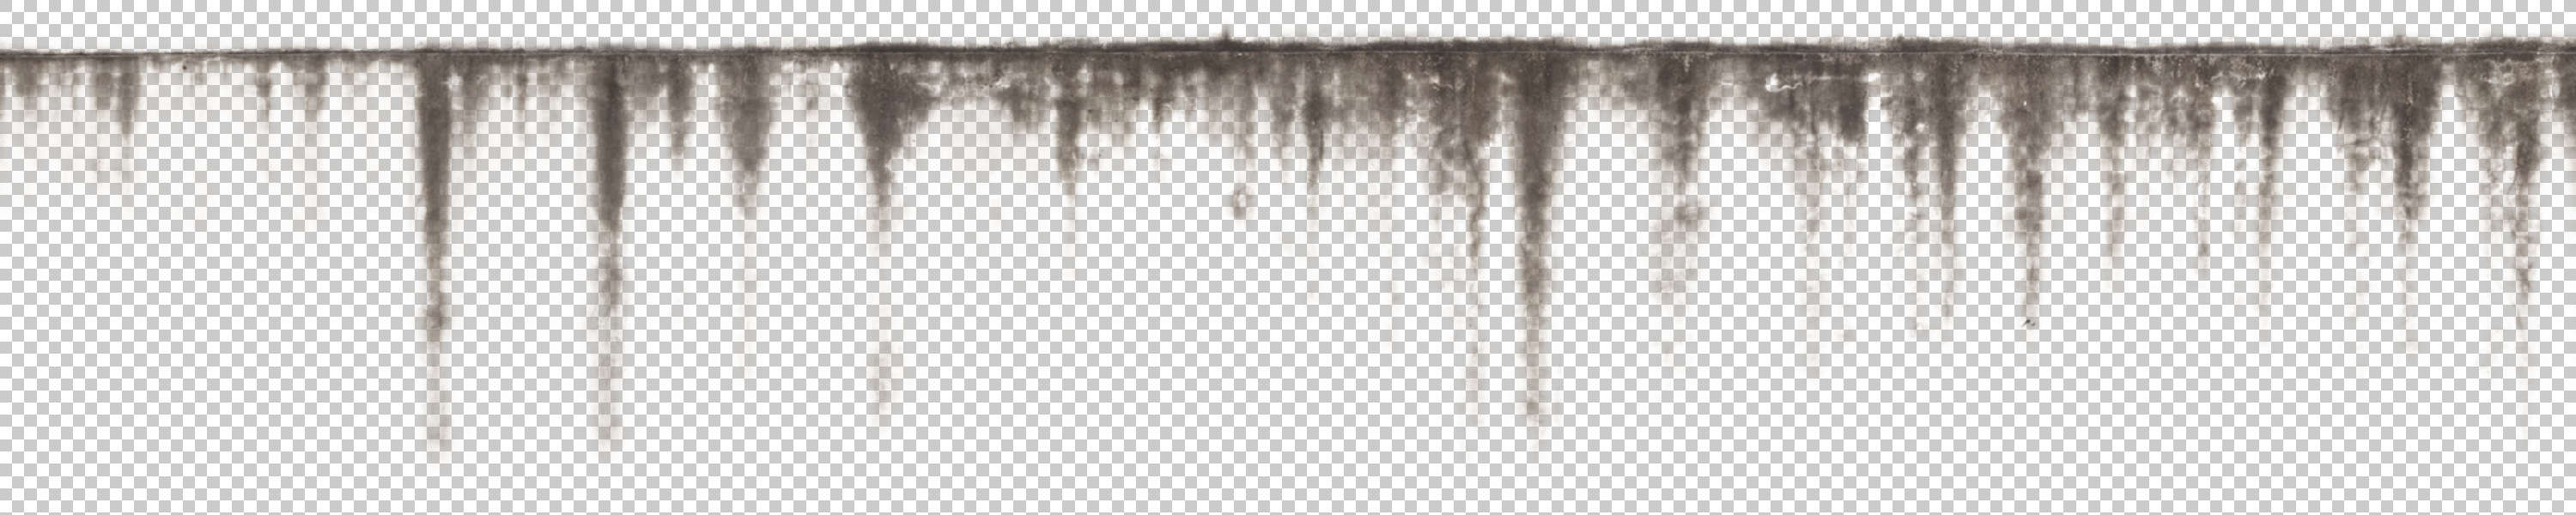 Decalsleaking0250 Free Background Texture Decal